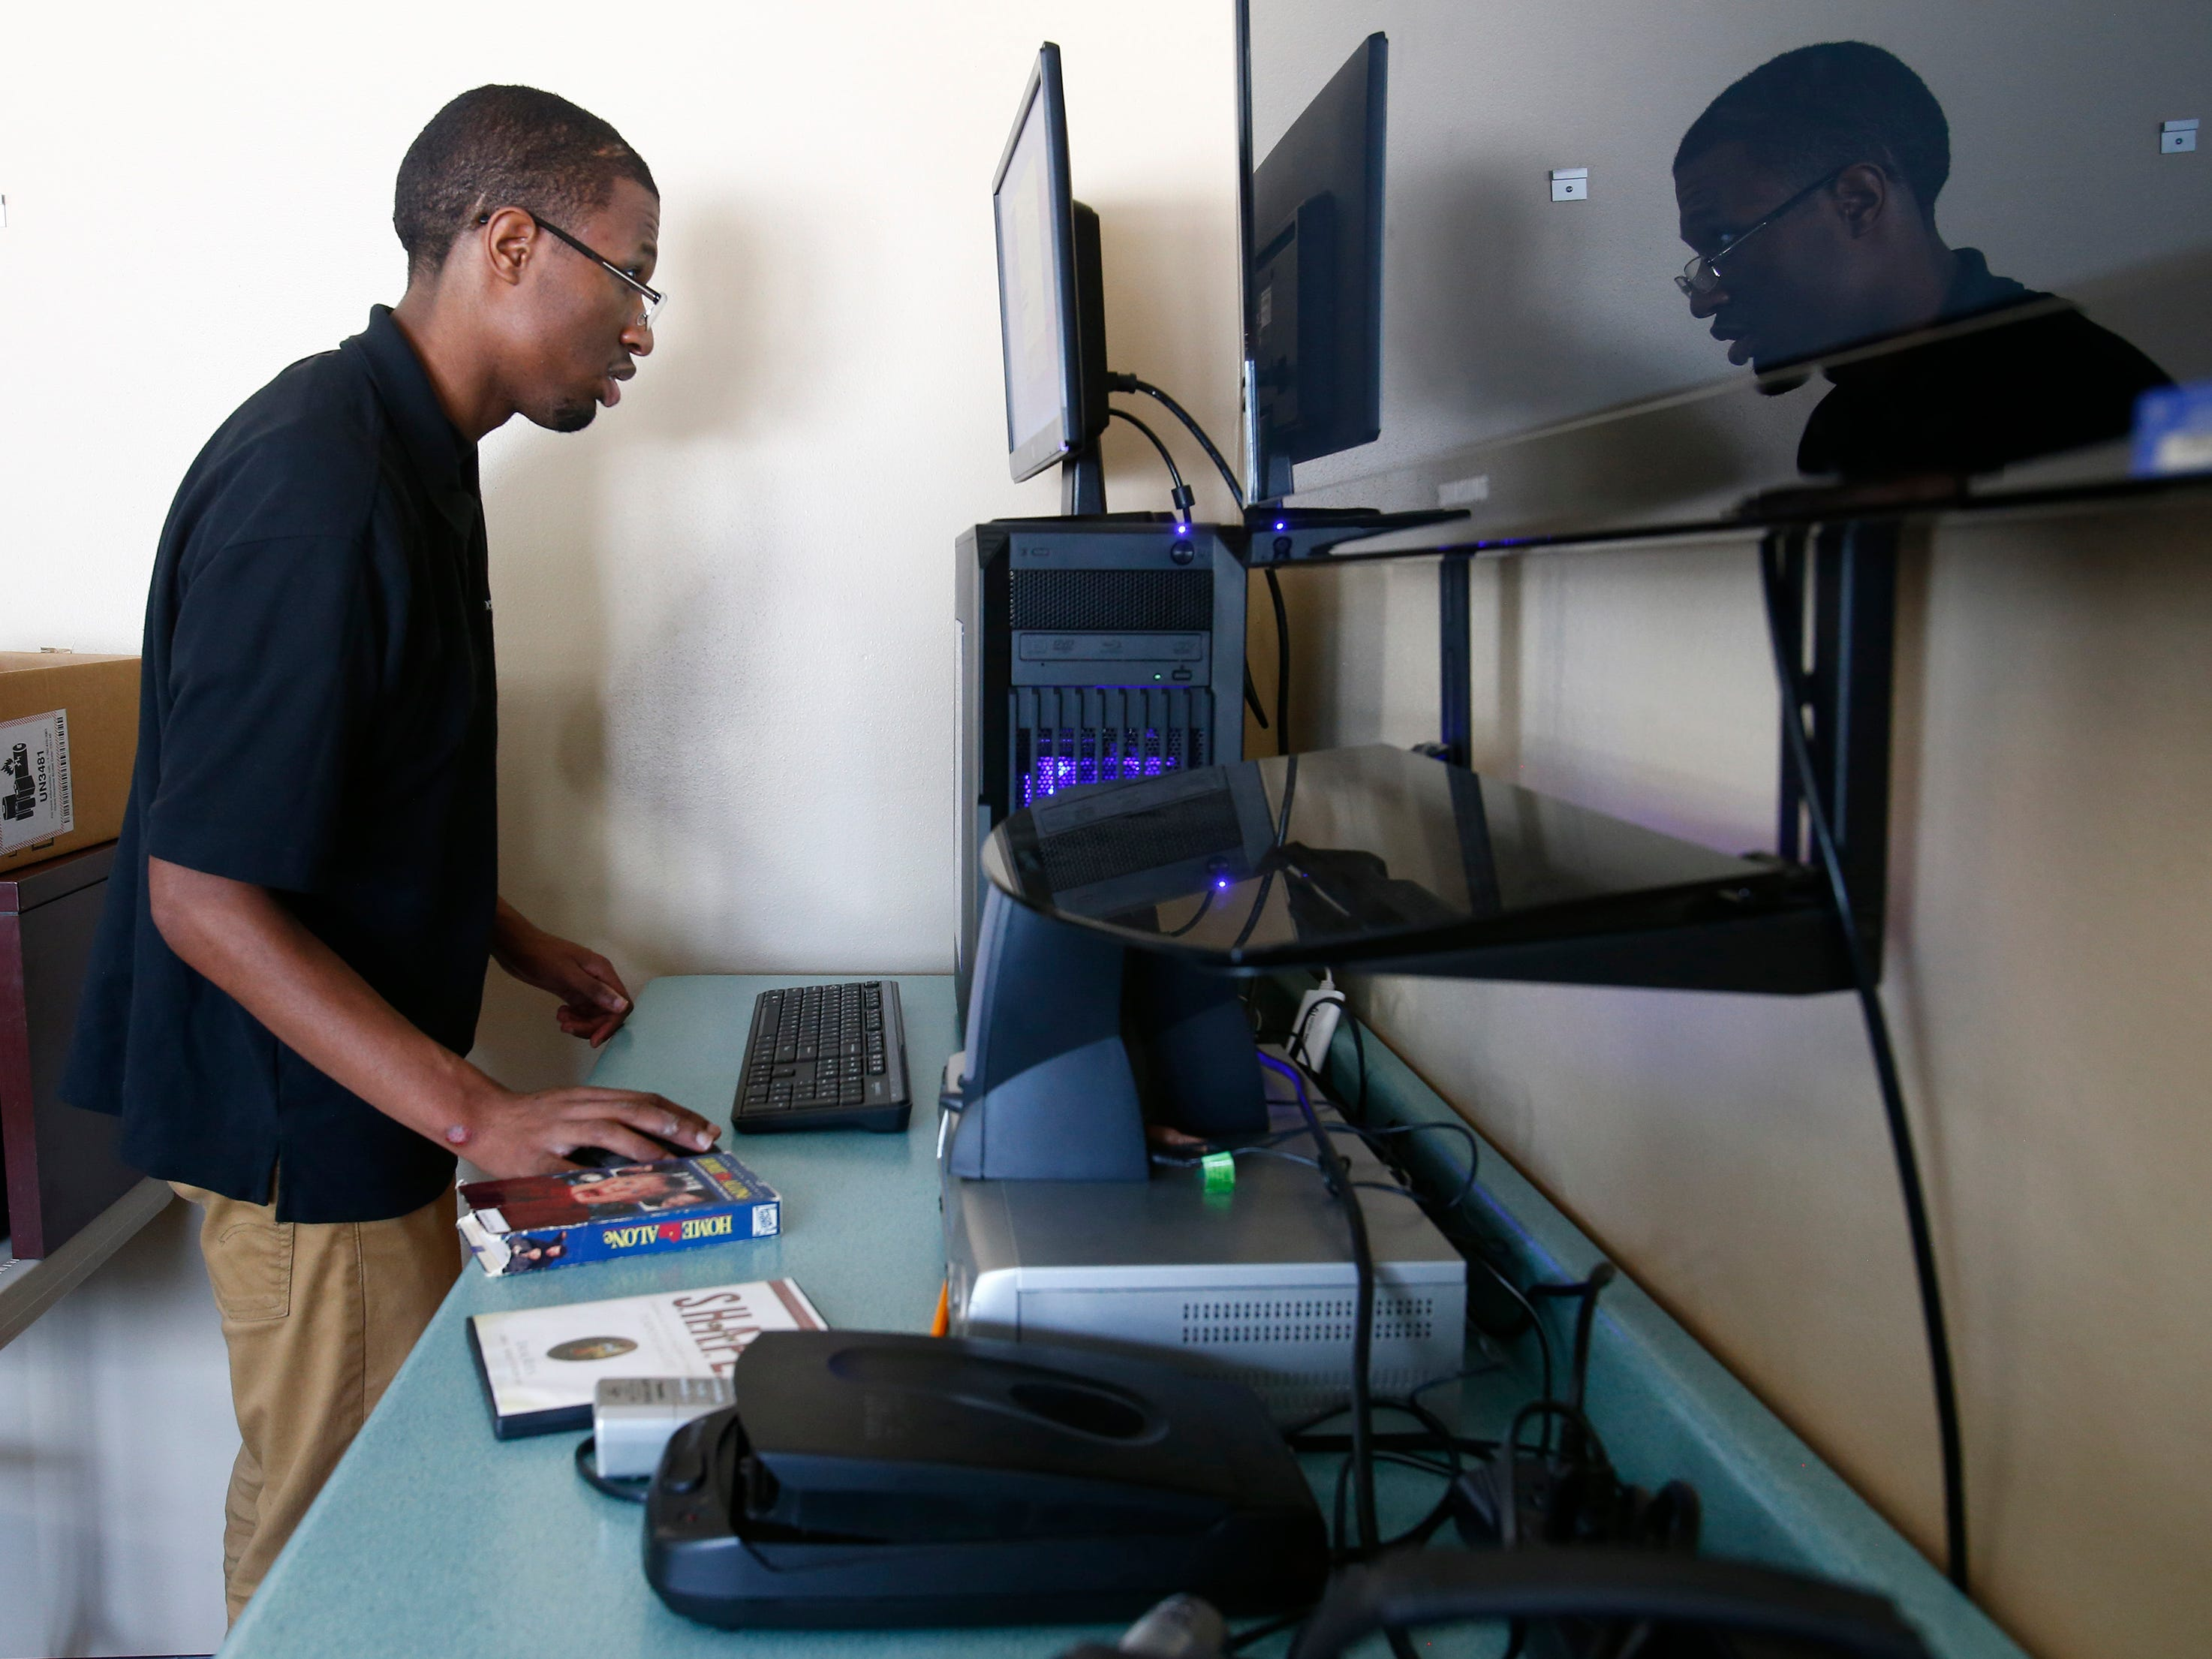 Ben Page works at his internship in the technology area while attending Shepherds College, a school for students with intellectual disabilities, in Union Grove.